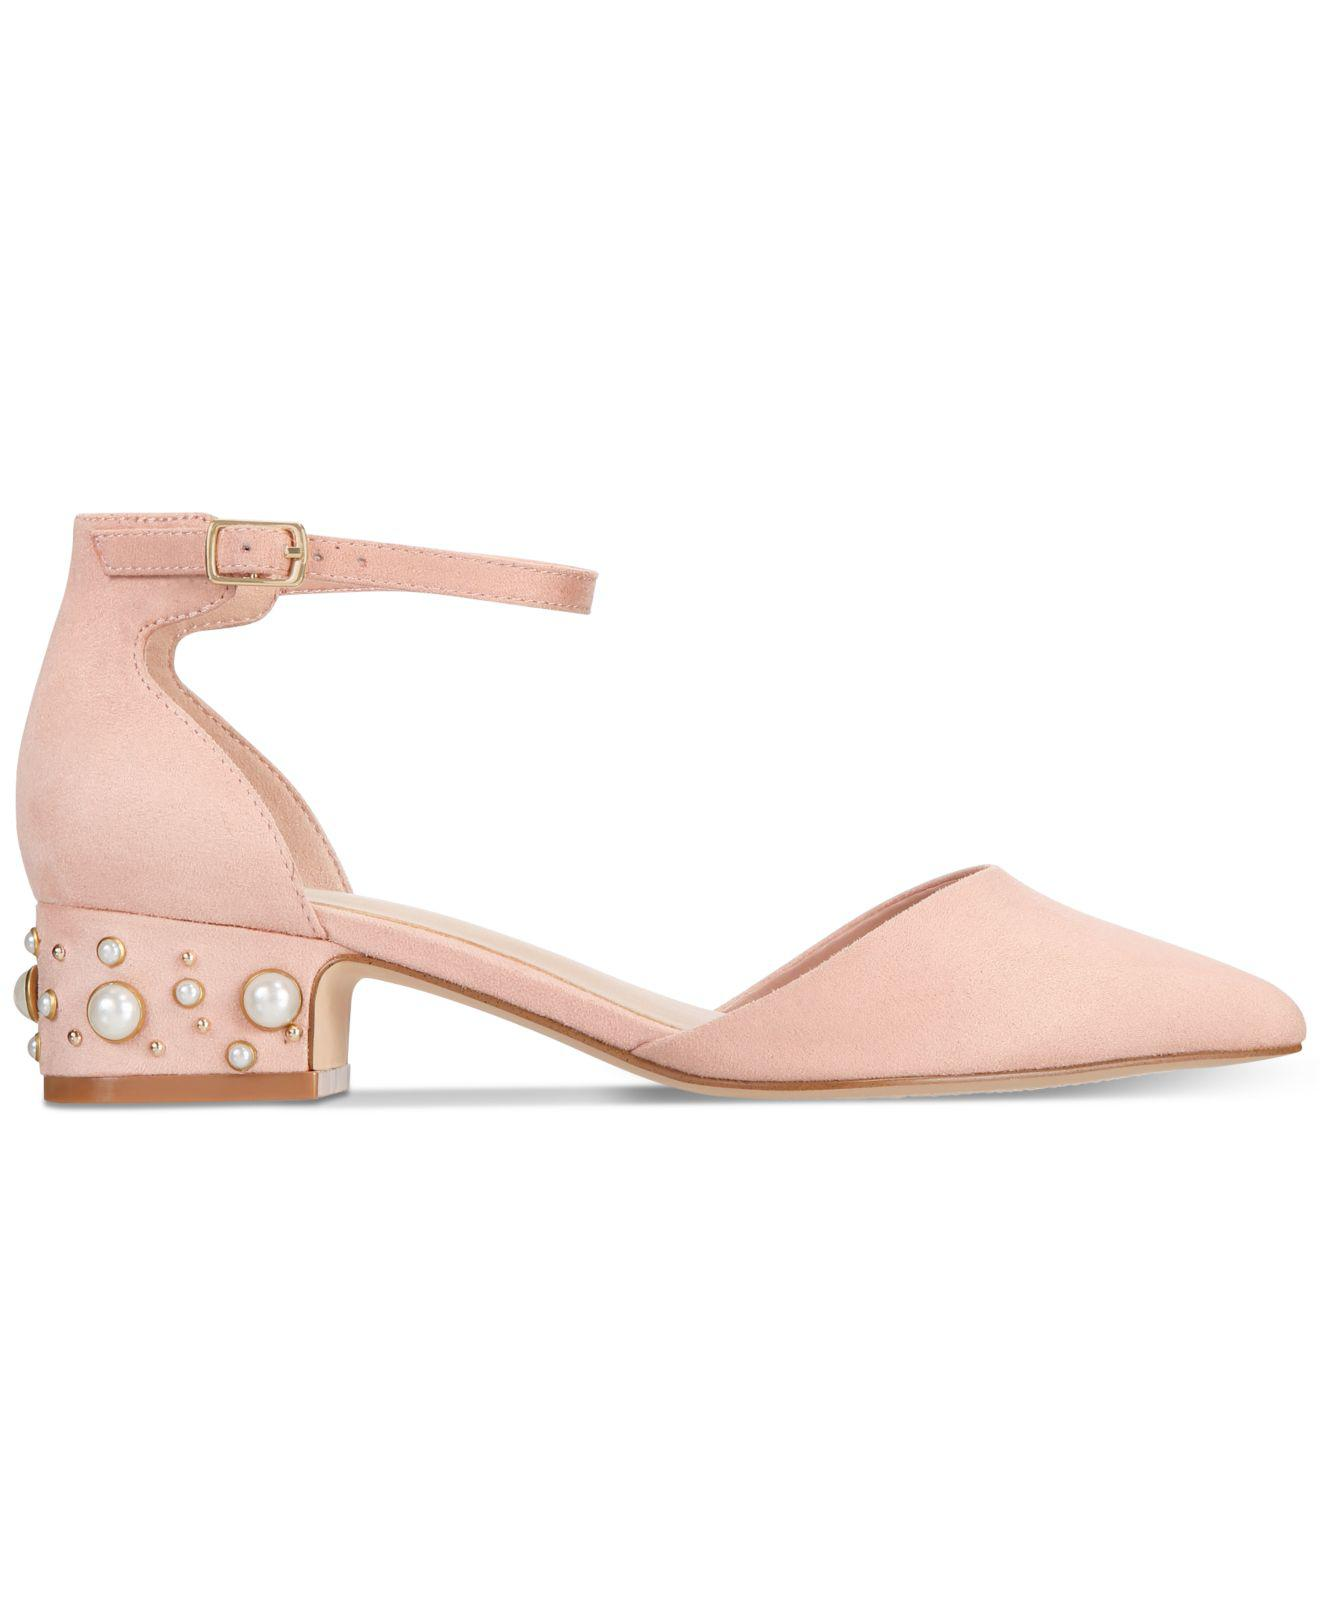 10298716a3dd Lyst - ALDO Women s Wiliwiel Block-heel Pumps in Pink